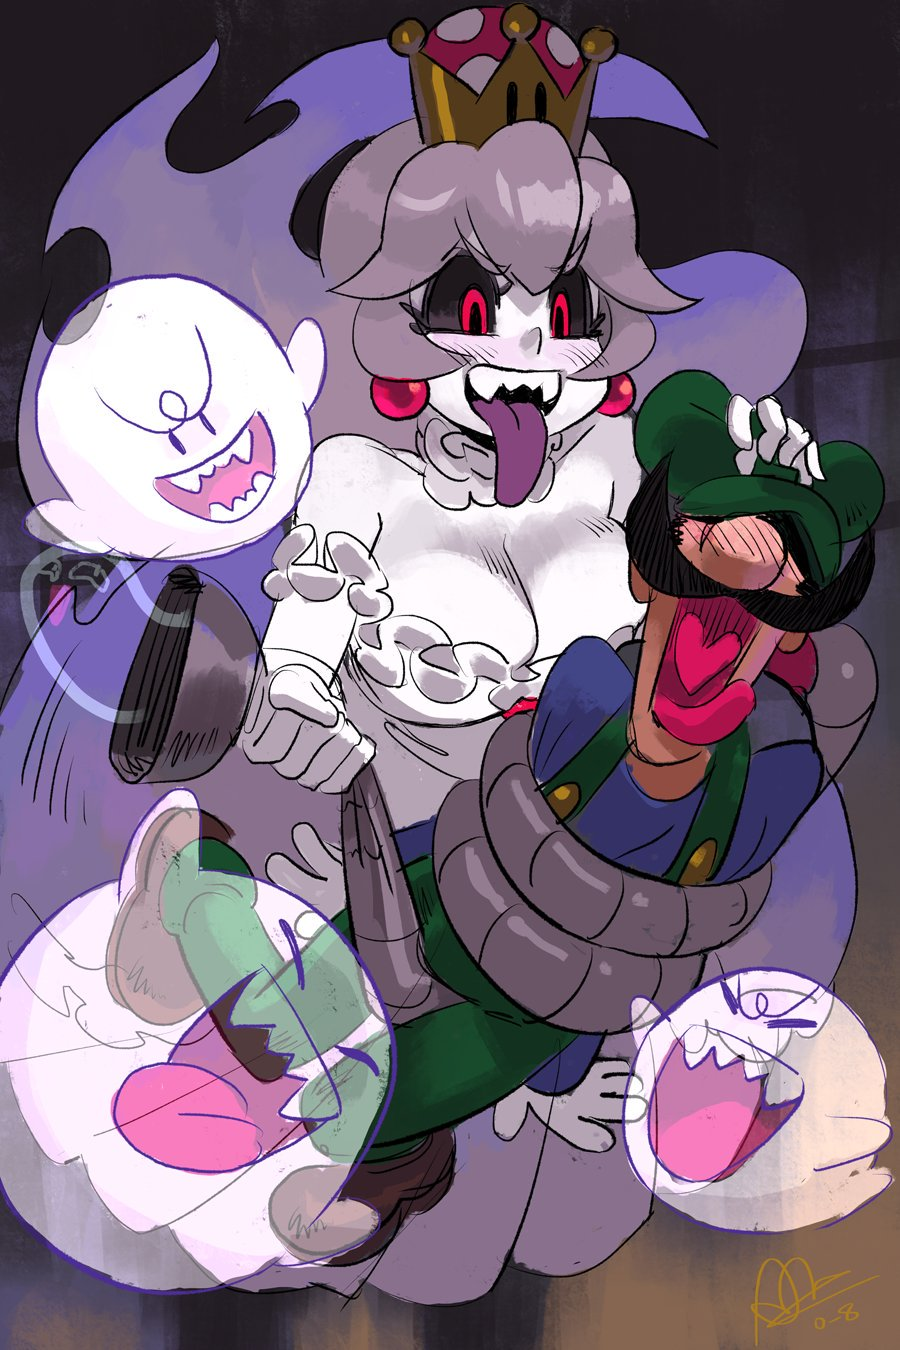 1boy 1girl alex_ahad black_sclera boo breasts cleavage commentary crown facial_hair ghost hat highres luigi luigi's_mansion mario_(series) mustache new_super_mario_bros._u_deluxe nintendo overalls poltergust_3000 princess_king_boo purple_tongue red_eyes screaming shoes super_crown tongue tongue_out white_hair white_skin